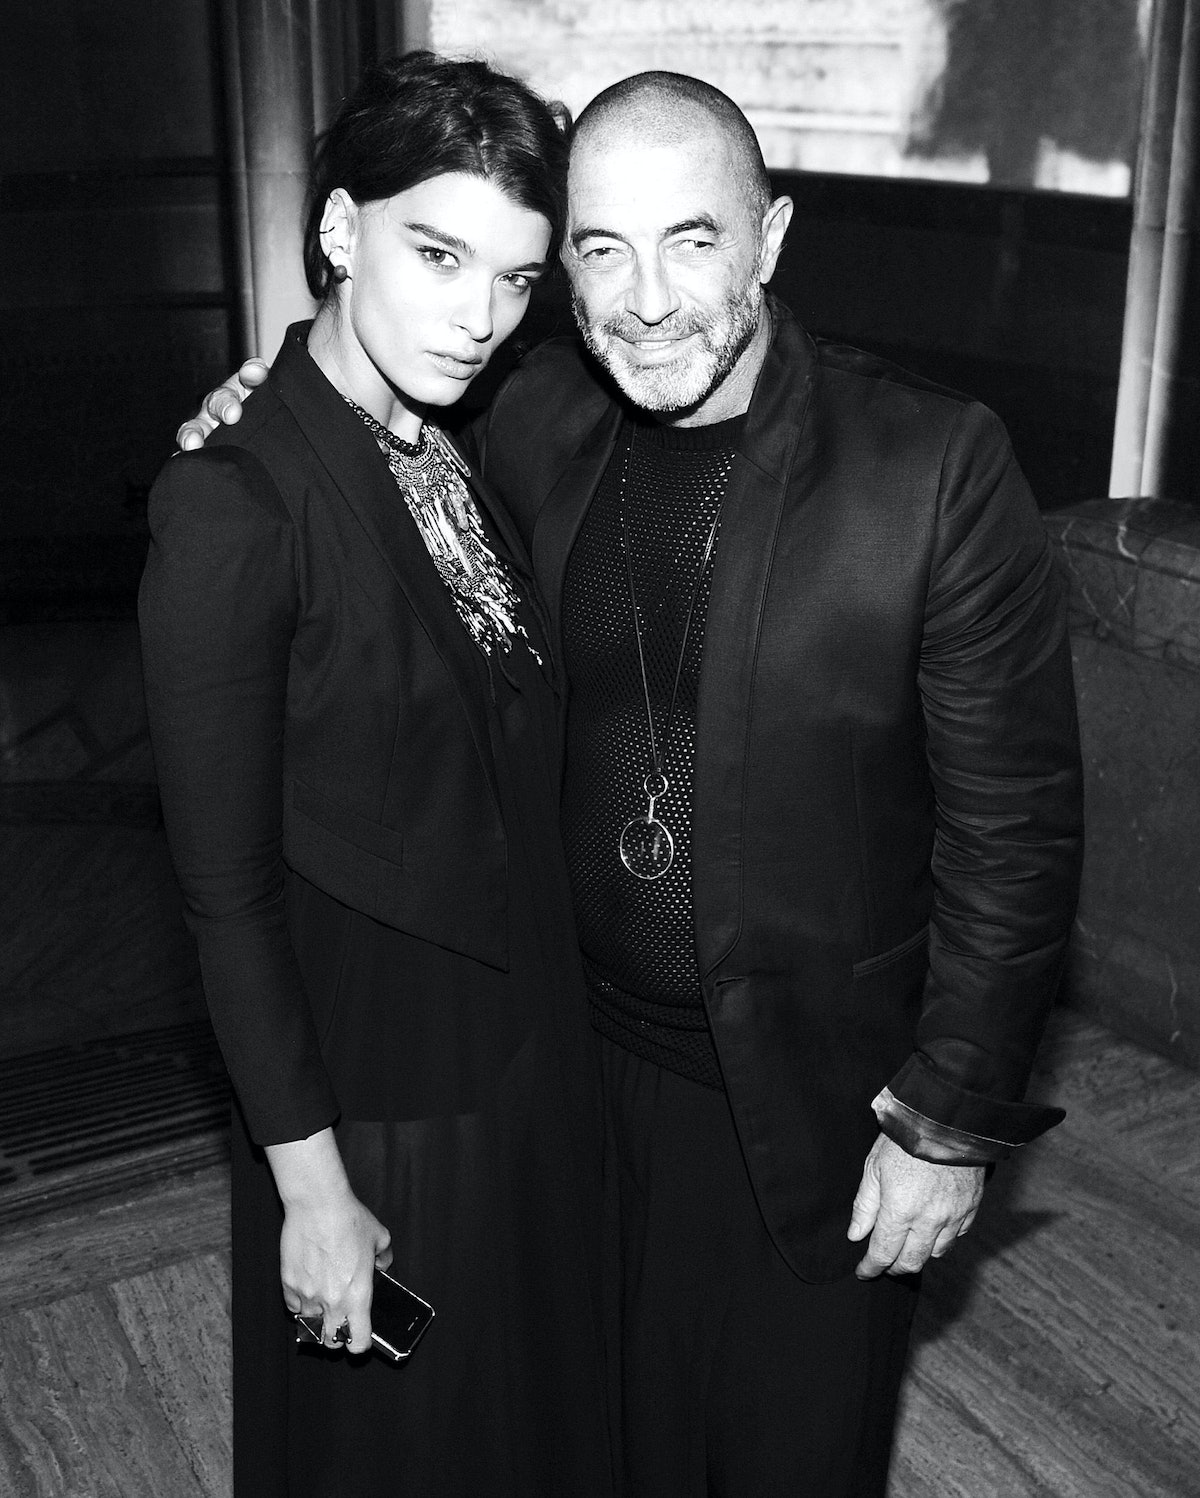 Crystal Renn and Etienne Russo